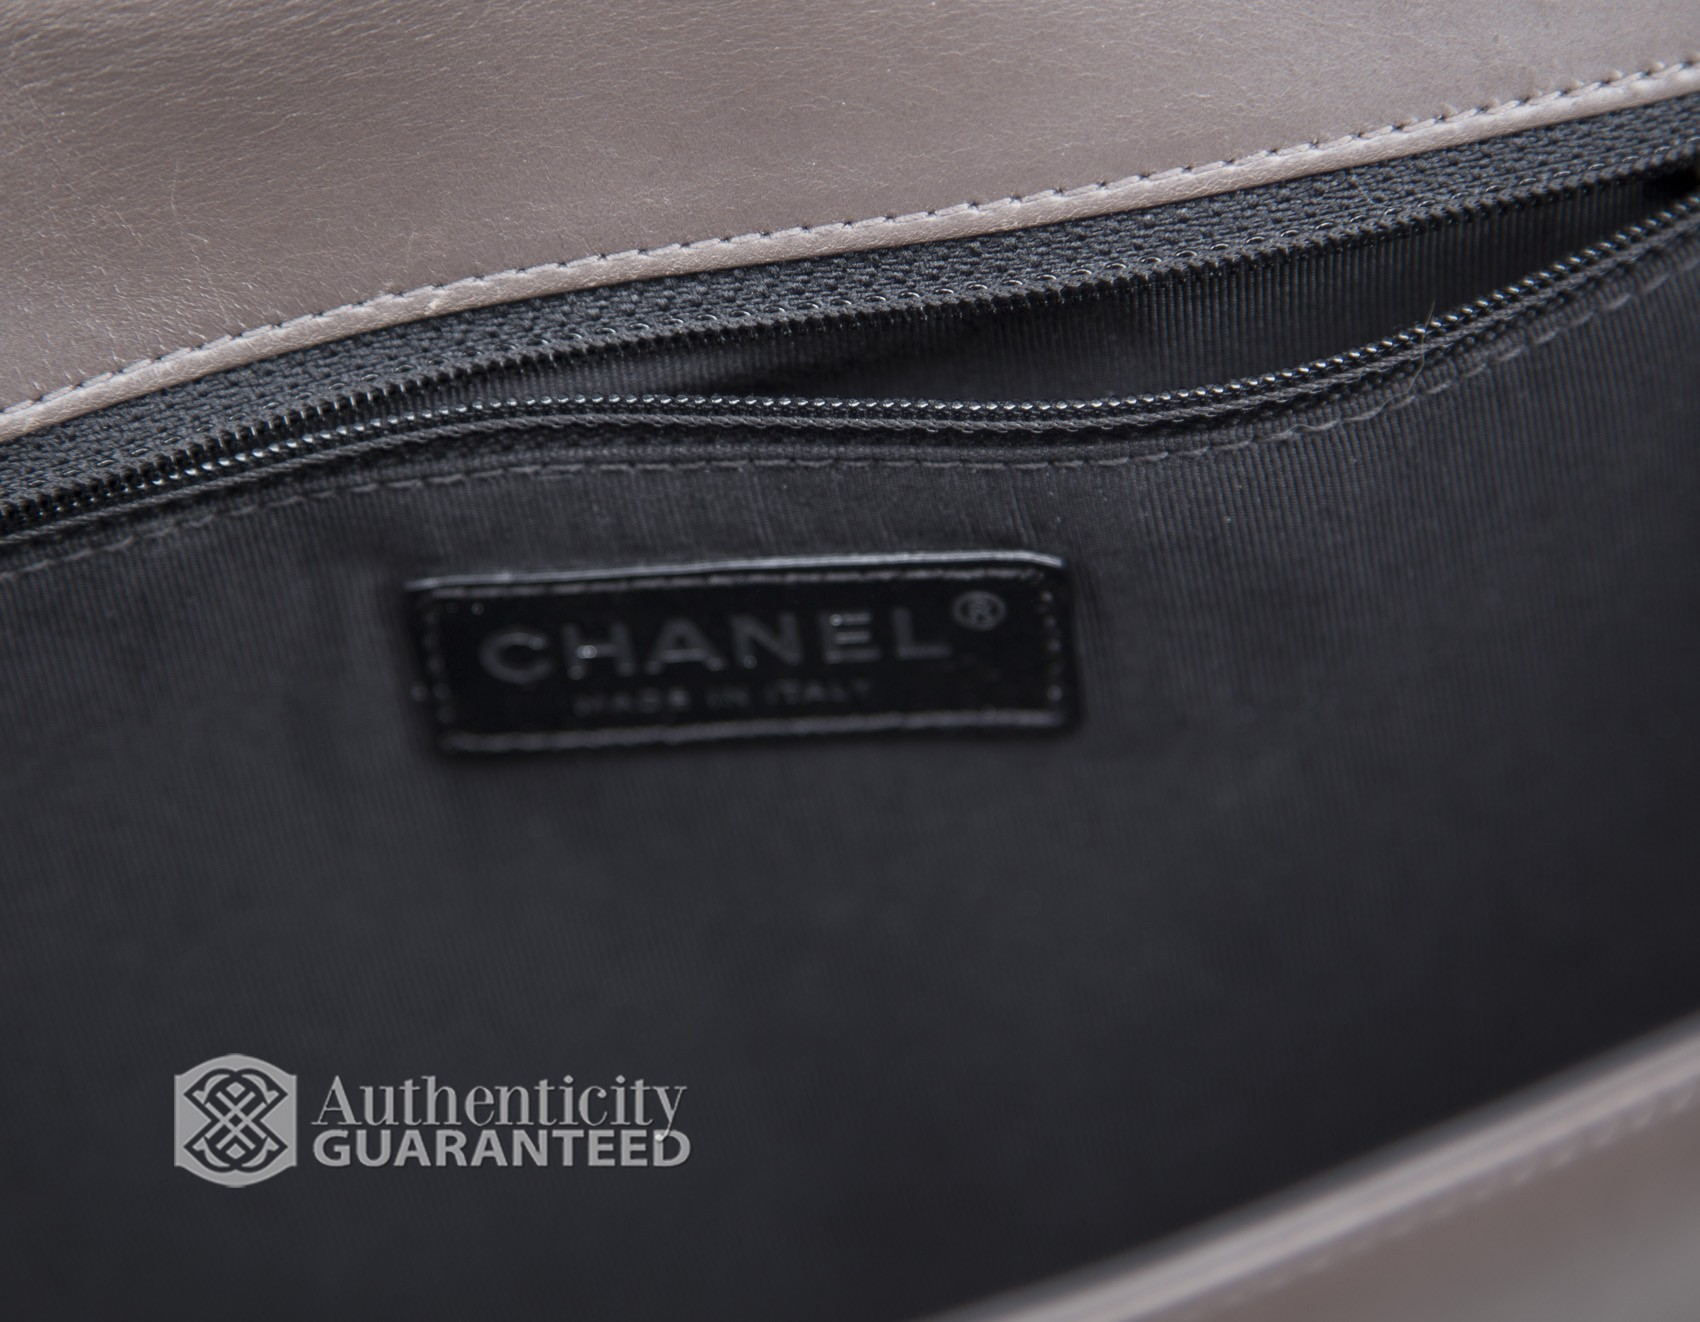 Chanel - Grey Black Calfskin Large Boy Flap